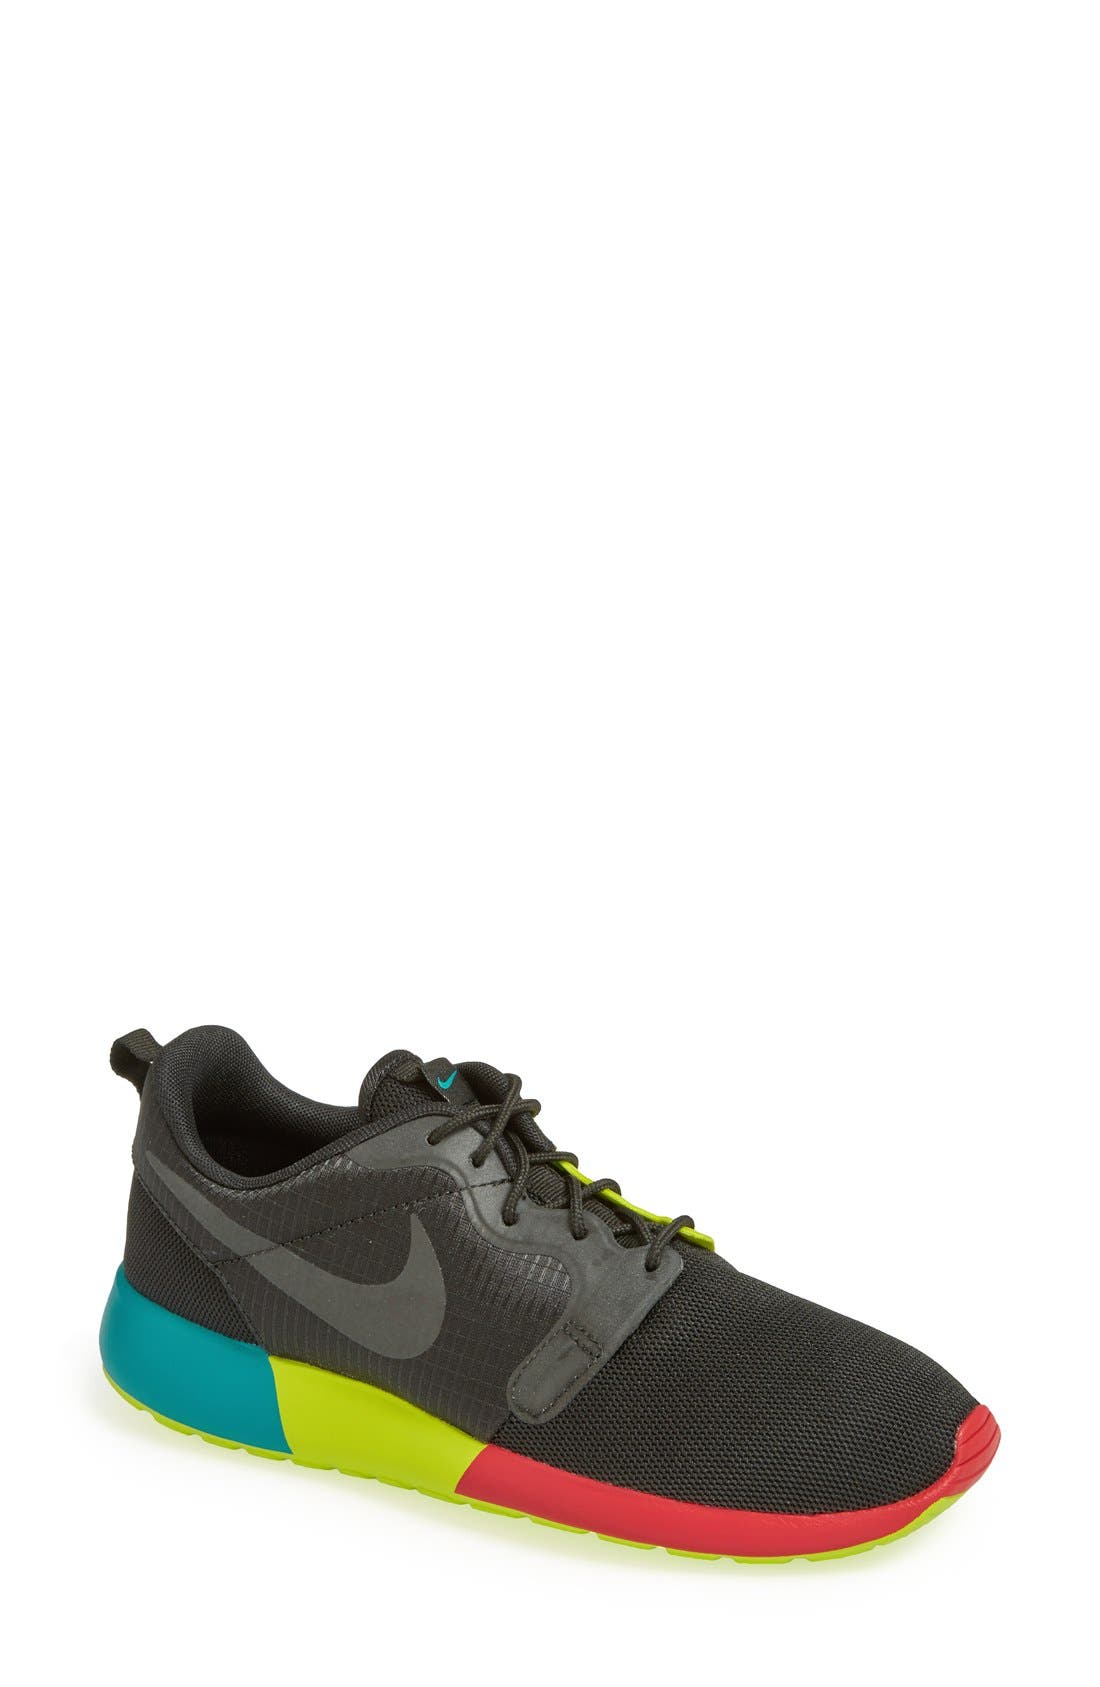 Main Image - Nike 'Roshe Run Hyperfuse' Sneaker (Women)